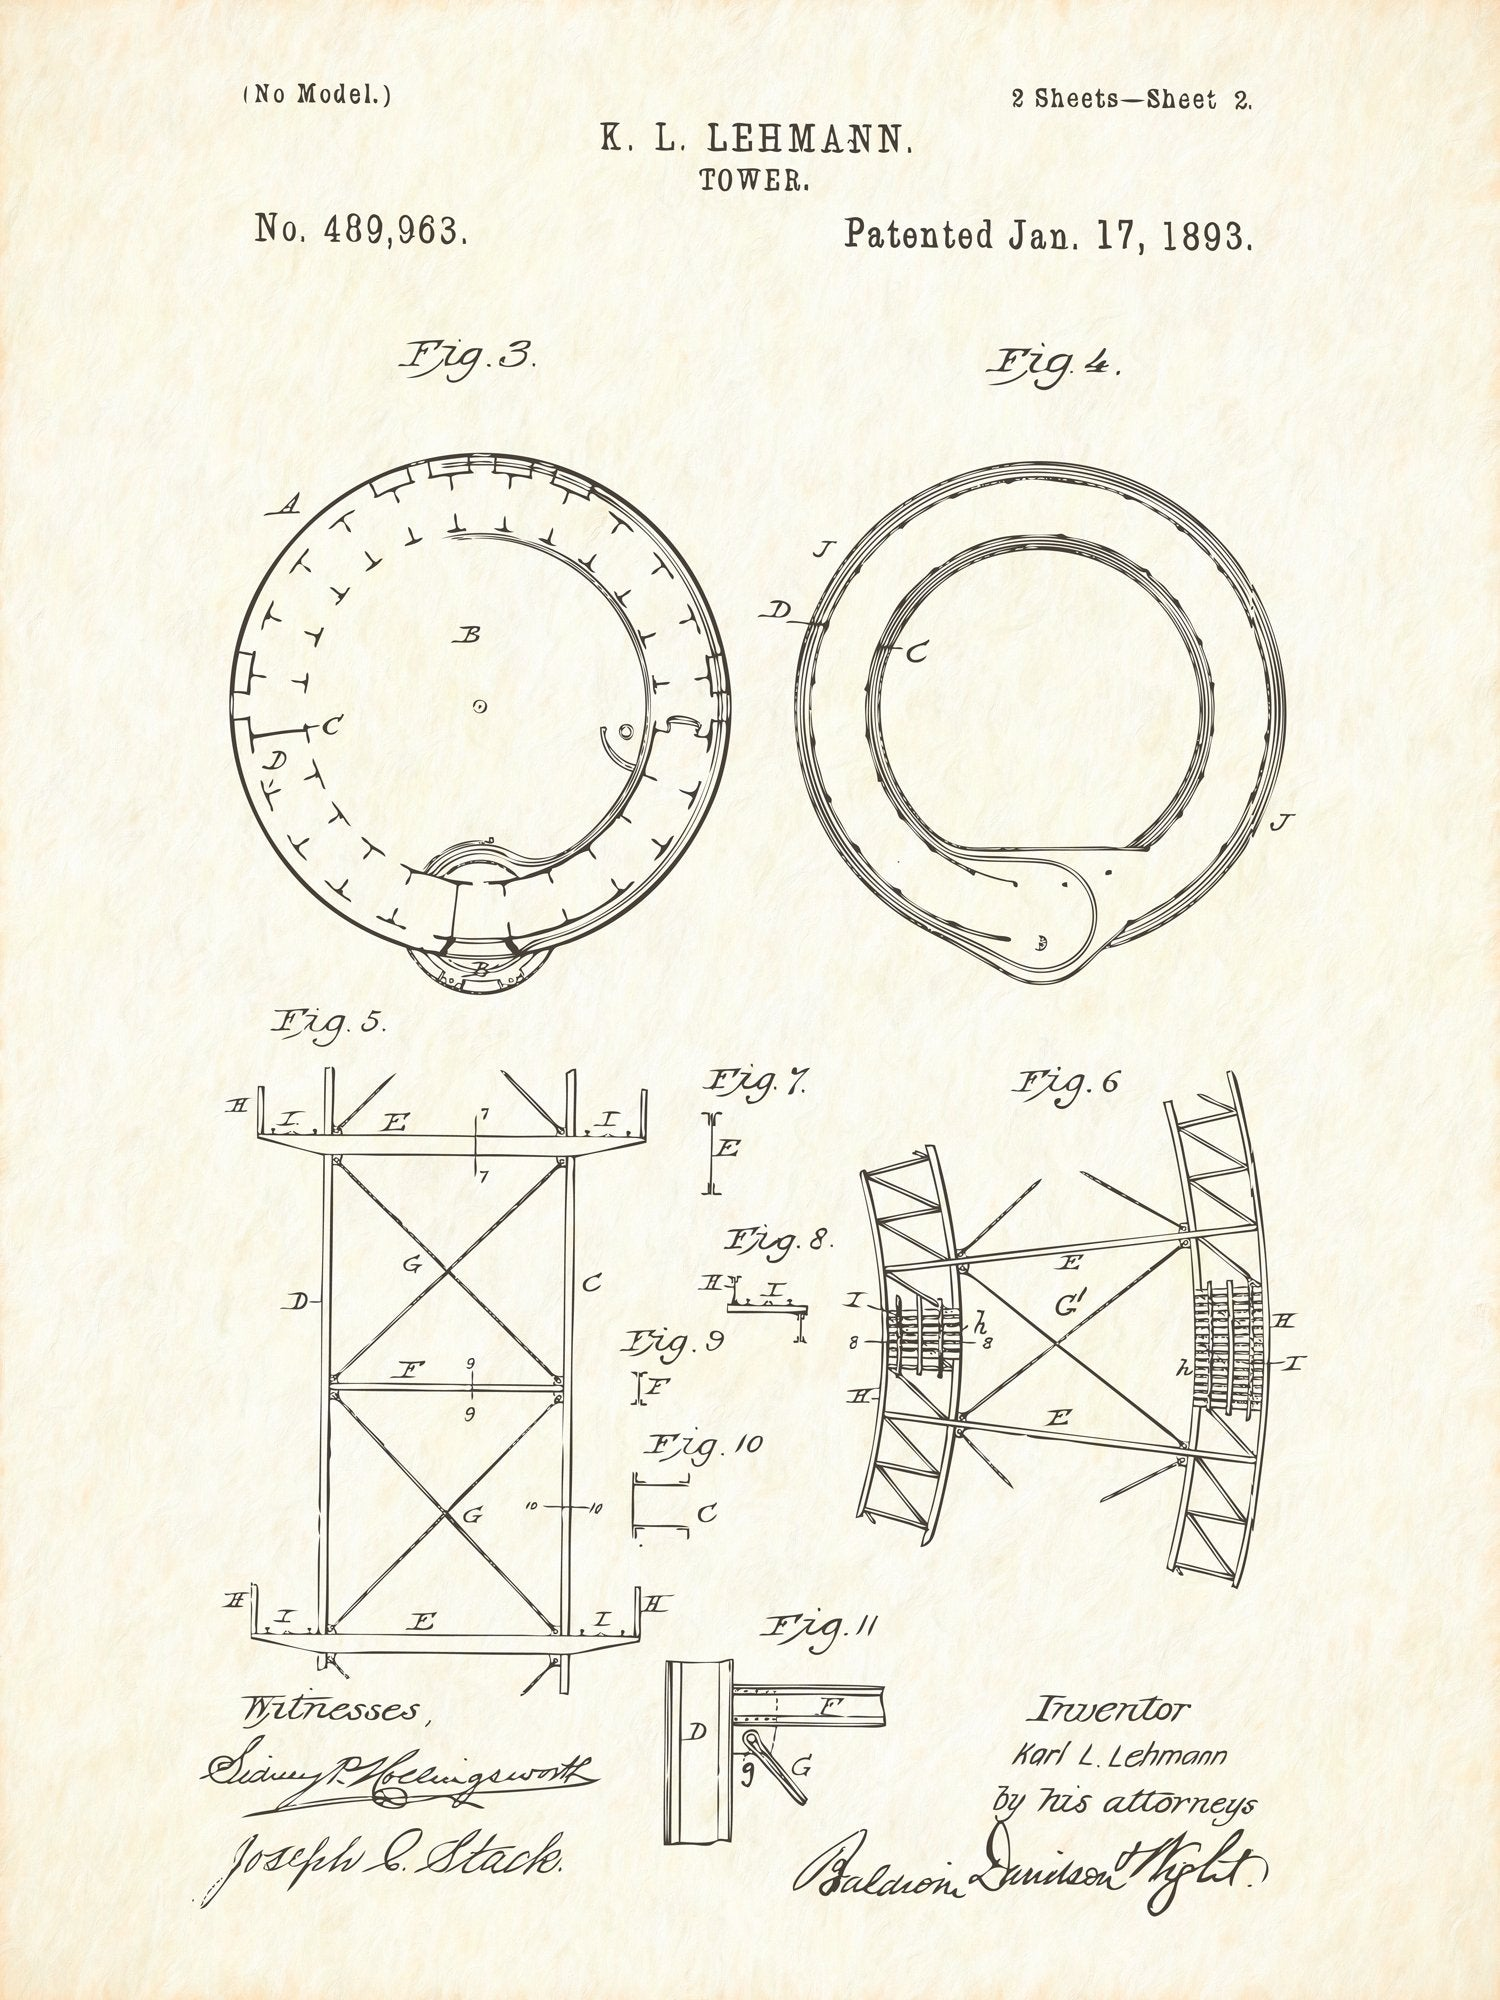 U.S. Patent No. 489963-2 Tower Reworked, Series 1